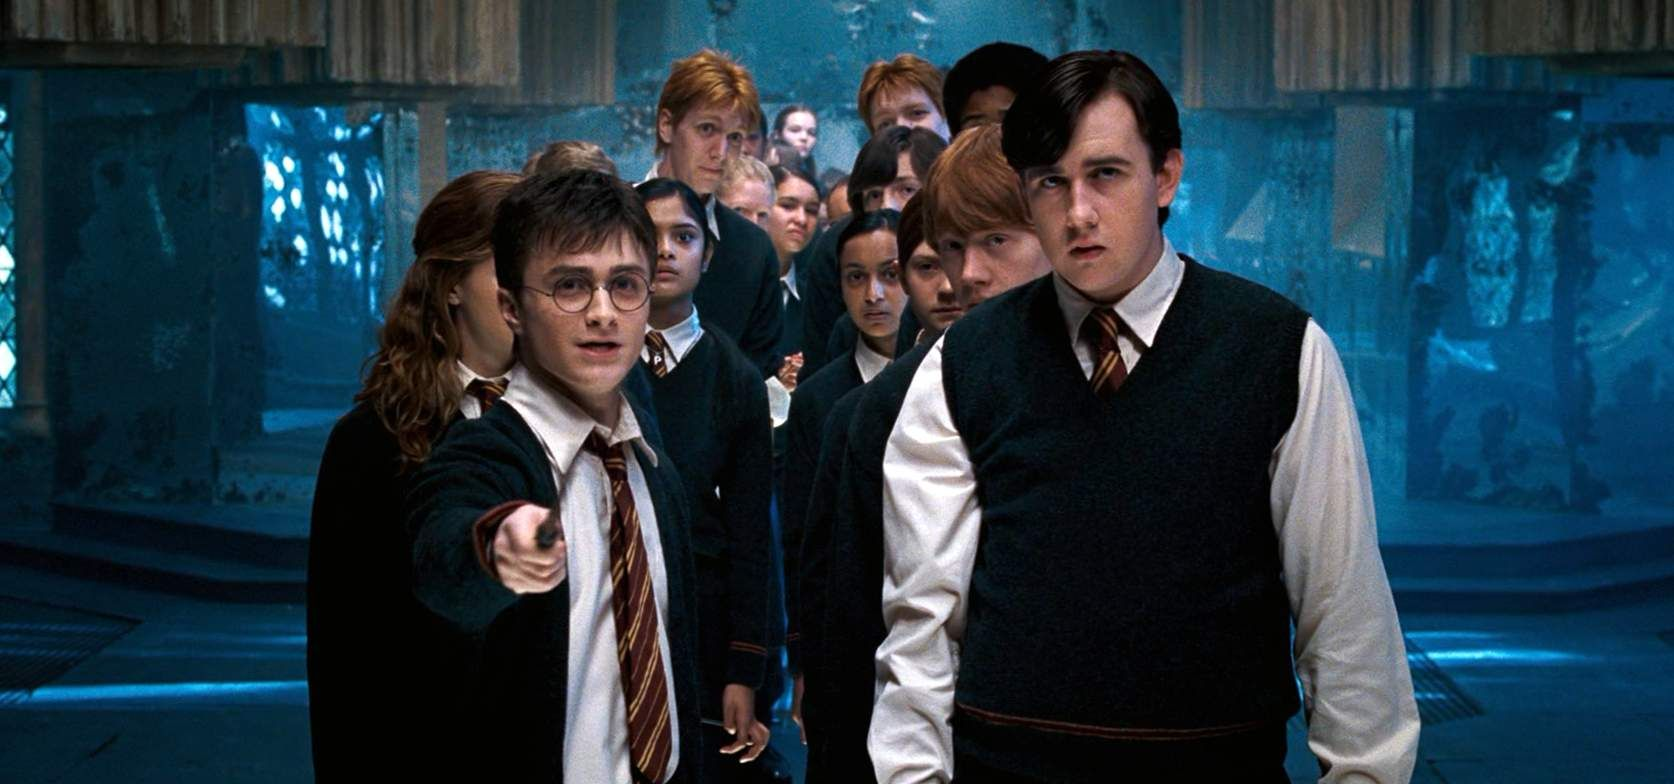 How To Stream The Harry Potter Movies Right Now Harry Potter Characters Harry Potter Movies Harry Potter Pictures